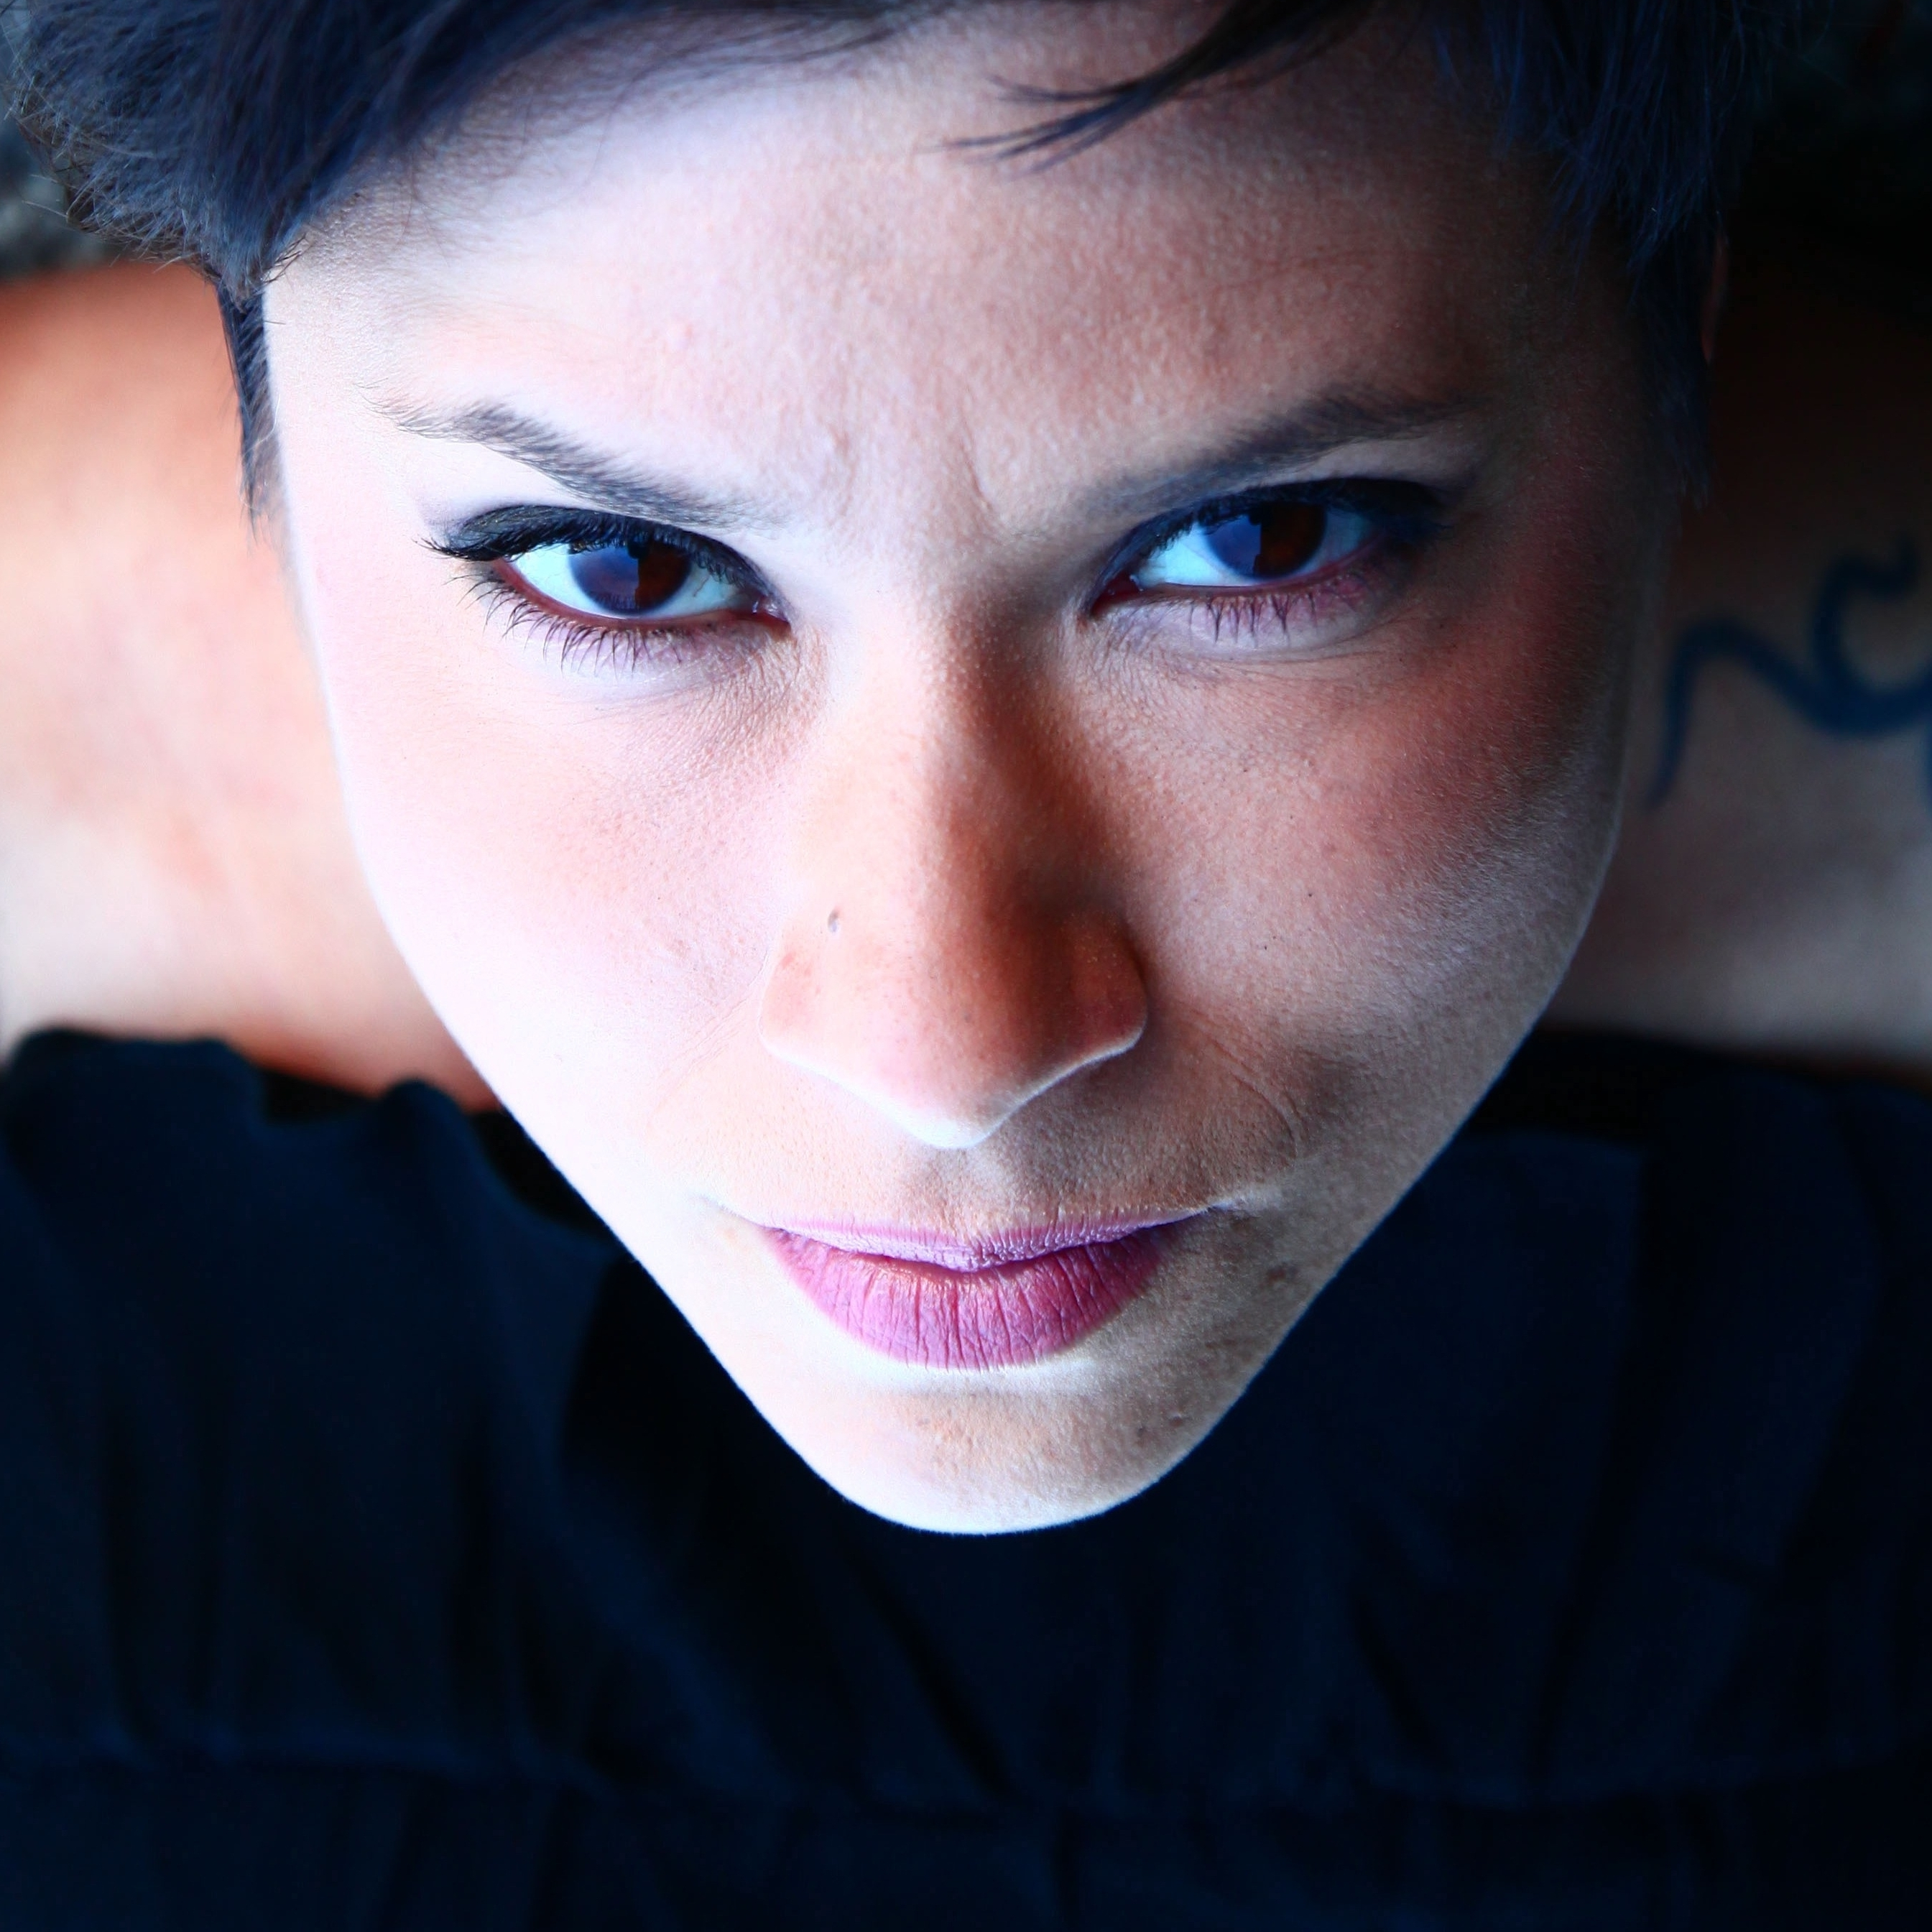 Sandra Velasquez's new album is titled Dig Deeper.